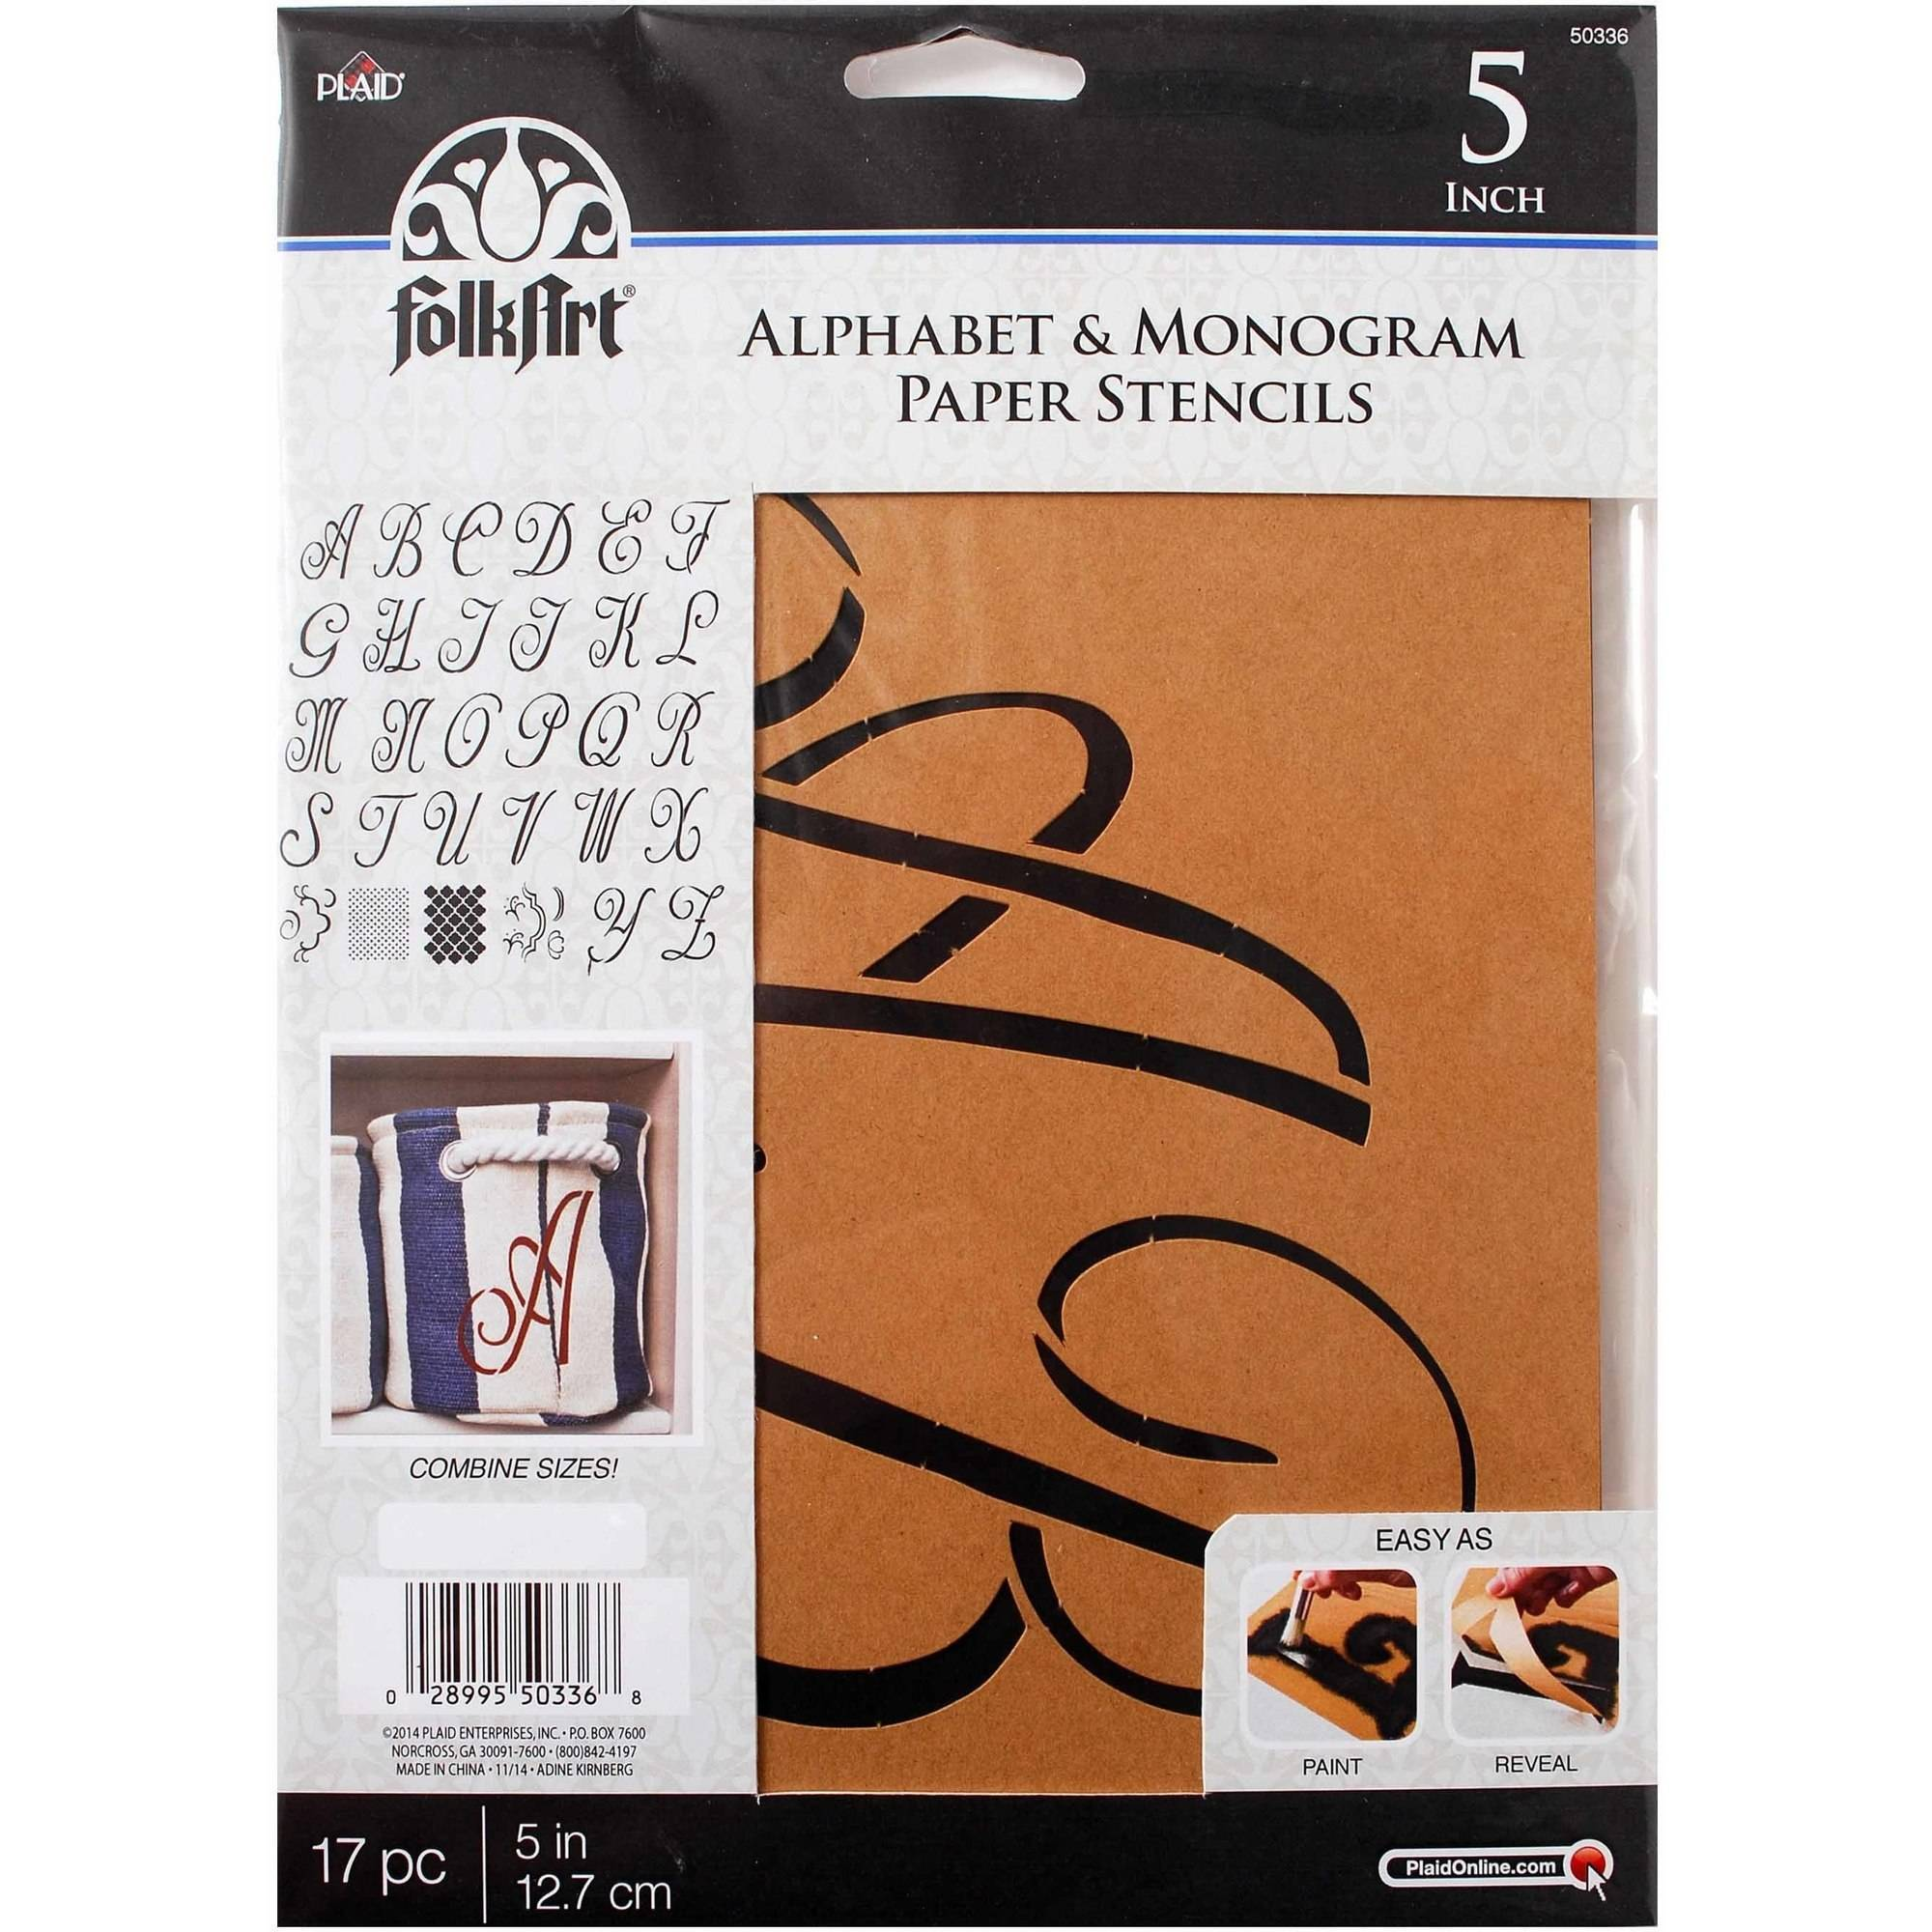 FolkArt Alphabet and Monogram Paper Stencils